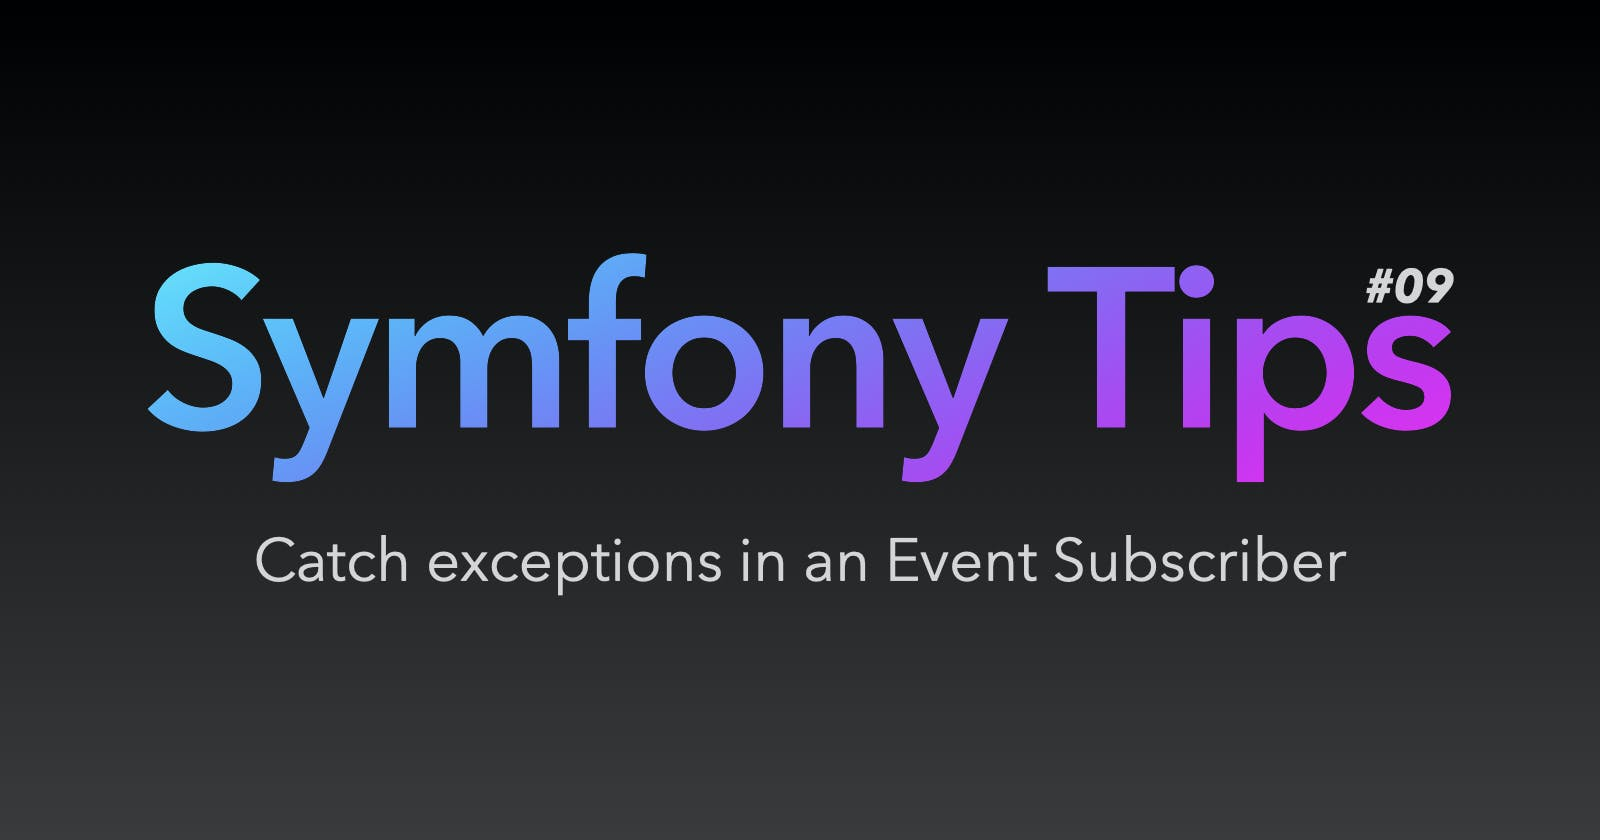 Symfony Tips #09 - Catch exceptions in an Event Subscriber